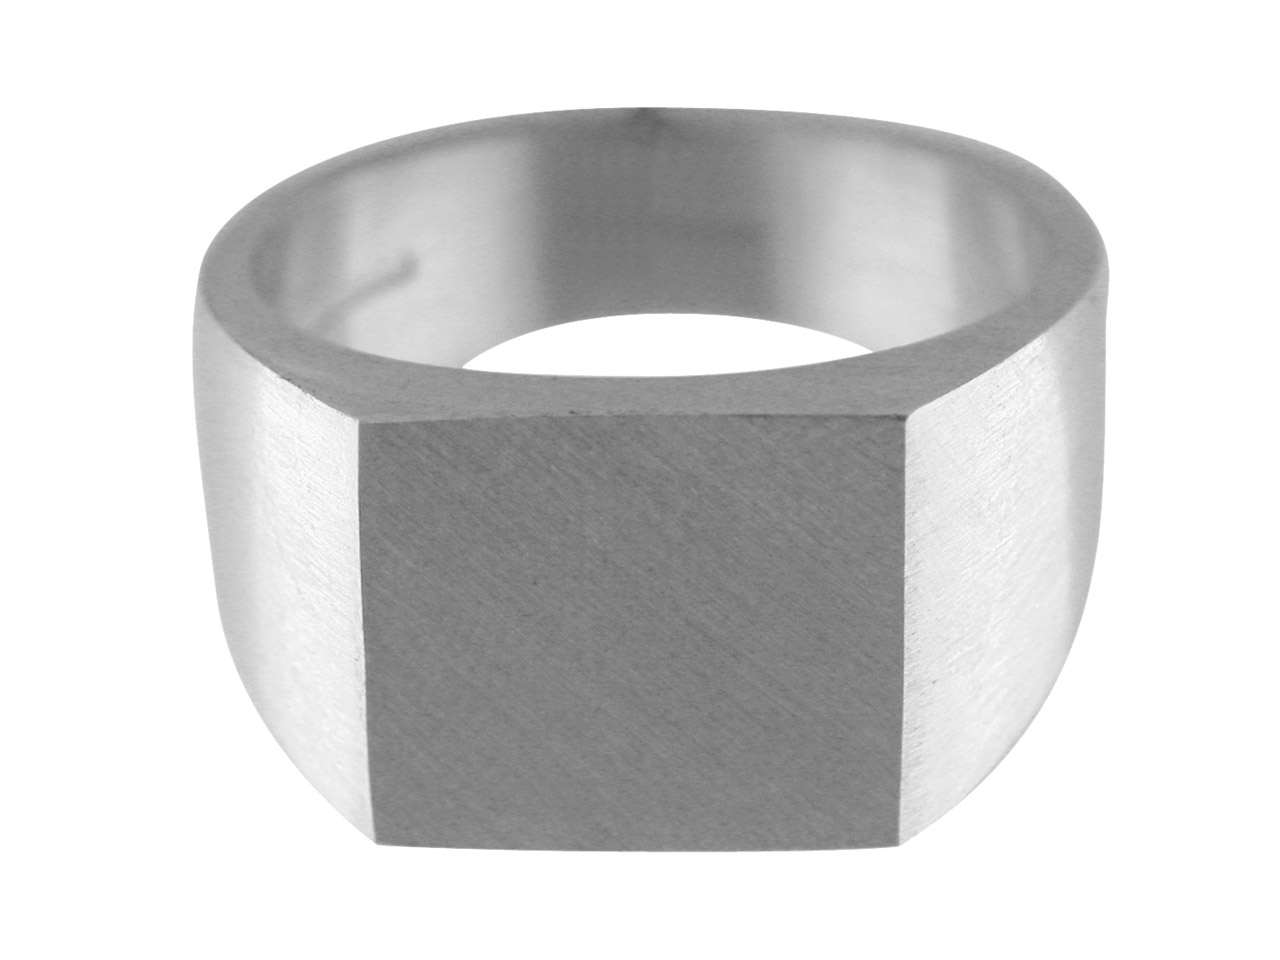 Sterling Silver G16 Initial        Rectangular Ring Hallmarked        17.5x12mm Head Depth 5mm Size R